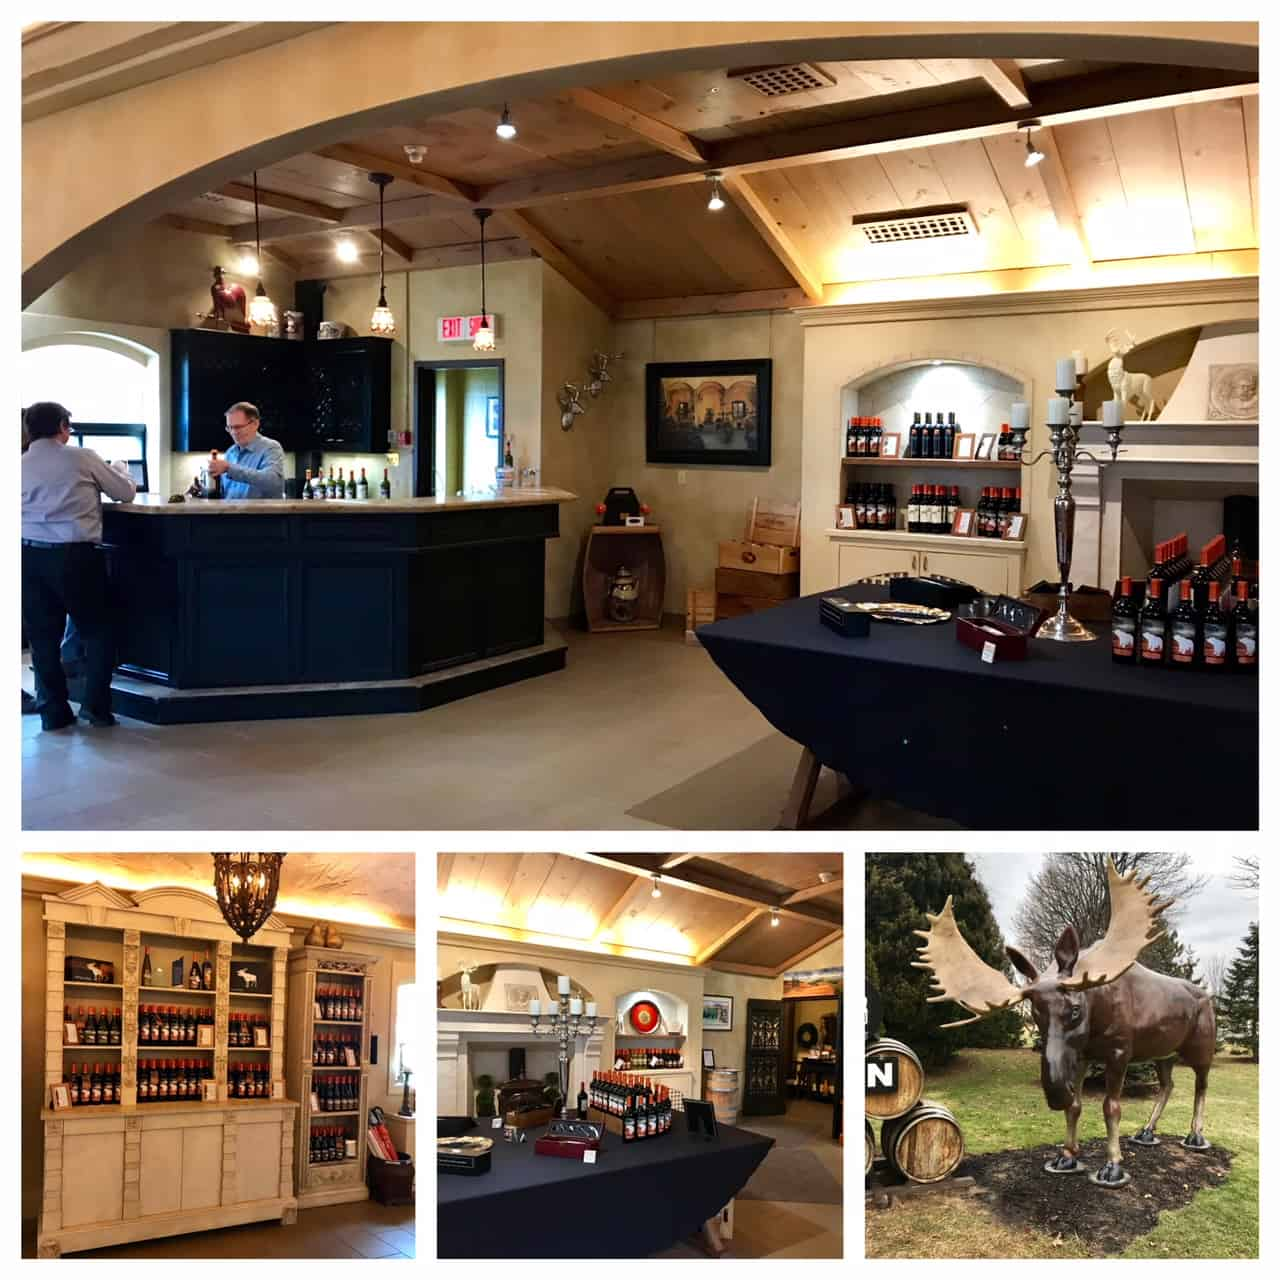 Collage of images from Forein Affair Winery